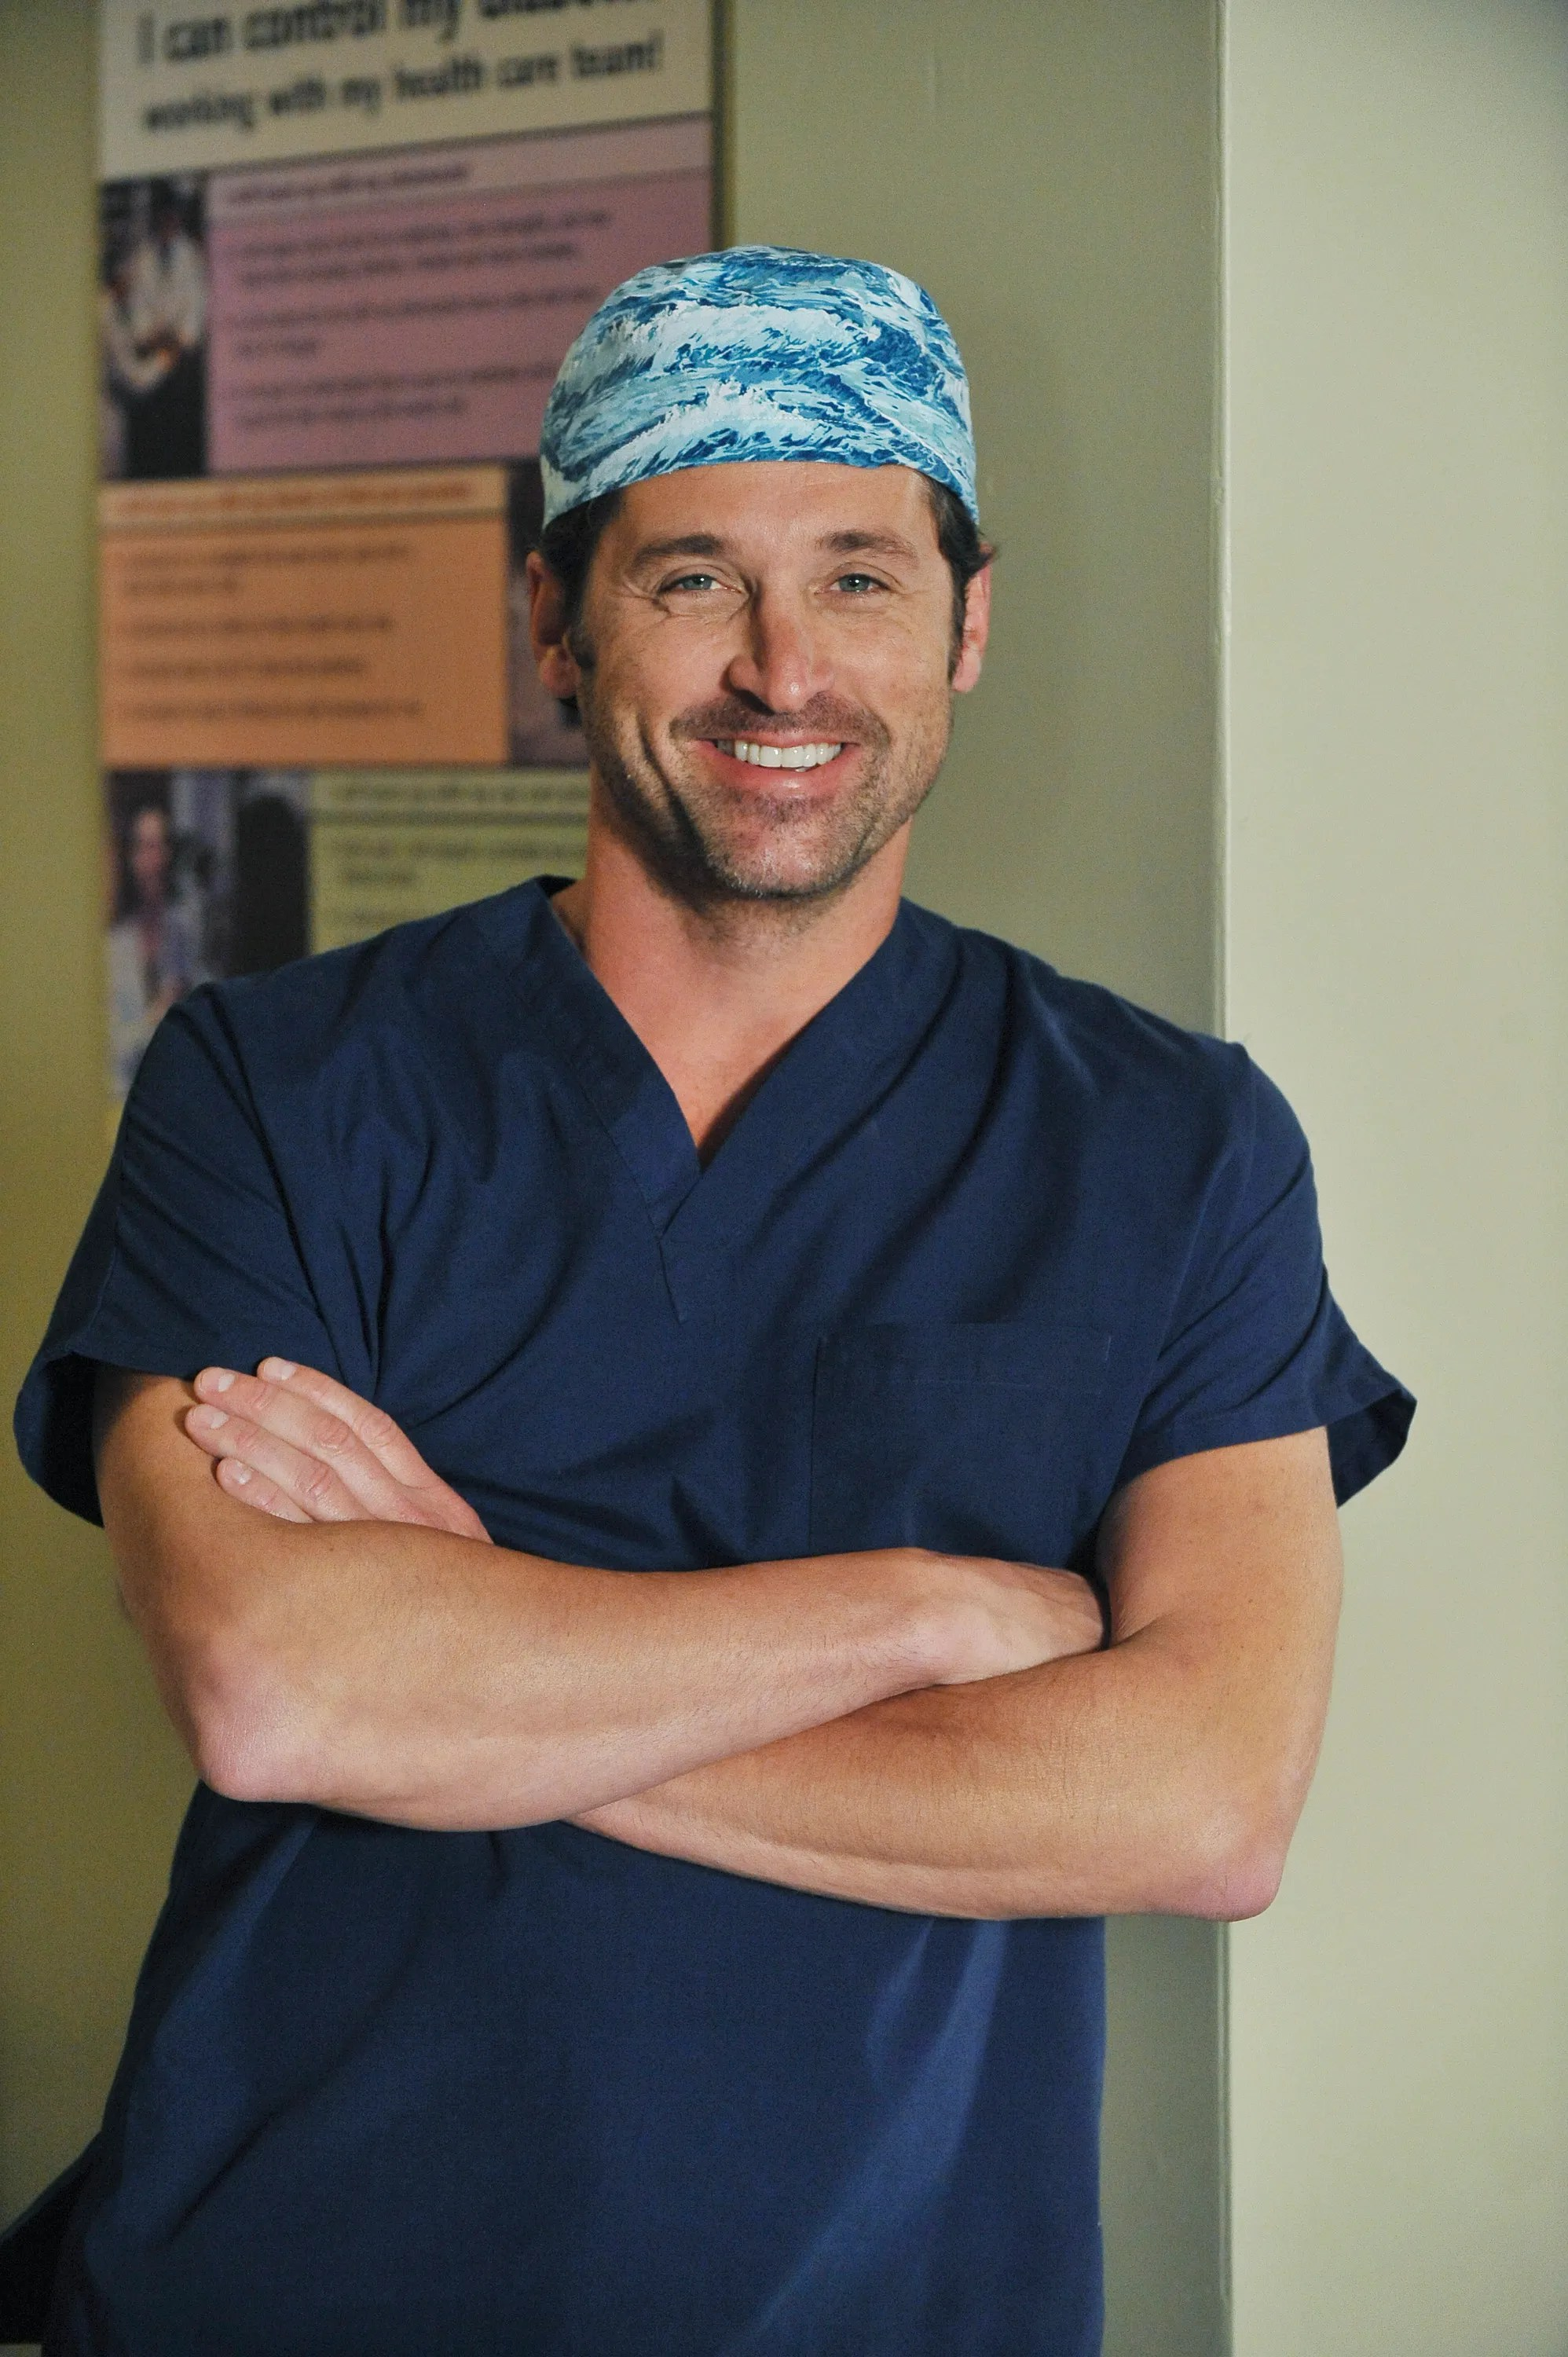 Derek Shepherd Scrub Cap : derek, shepherd, scrub, Patrick, Dempsey, Brought, McDreamy, Grey's, Anatomy, Glamour